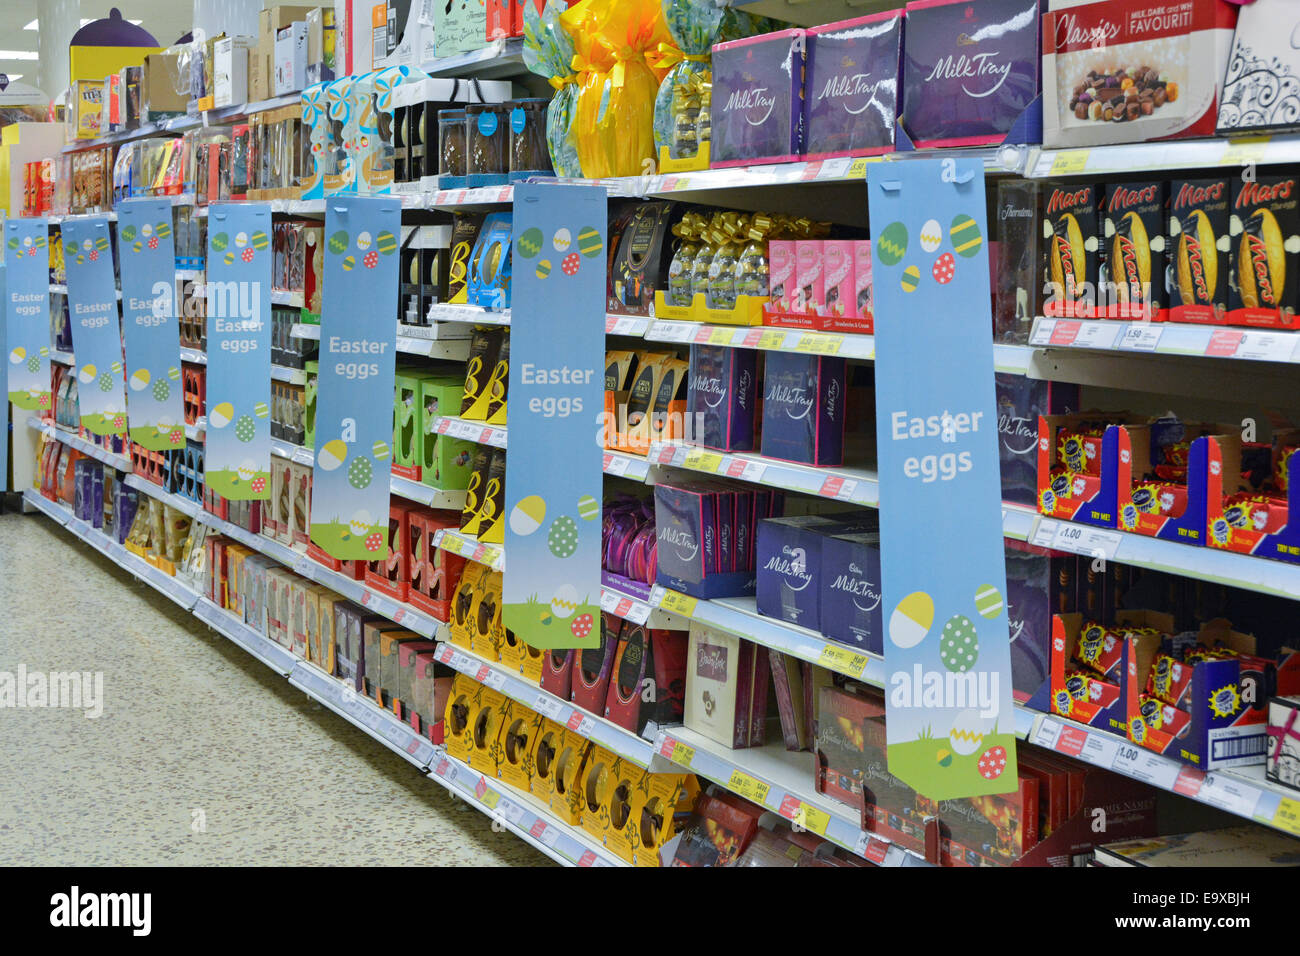 Inside tesco store stock photos inside tesco store stock images chocolate easter eggs on sale in large tesco supermarket london england uk stock image negle Gallery